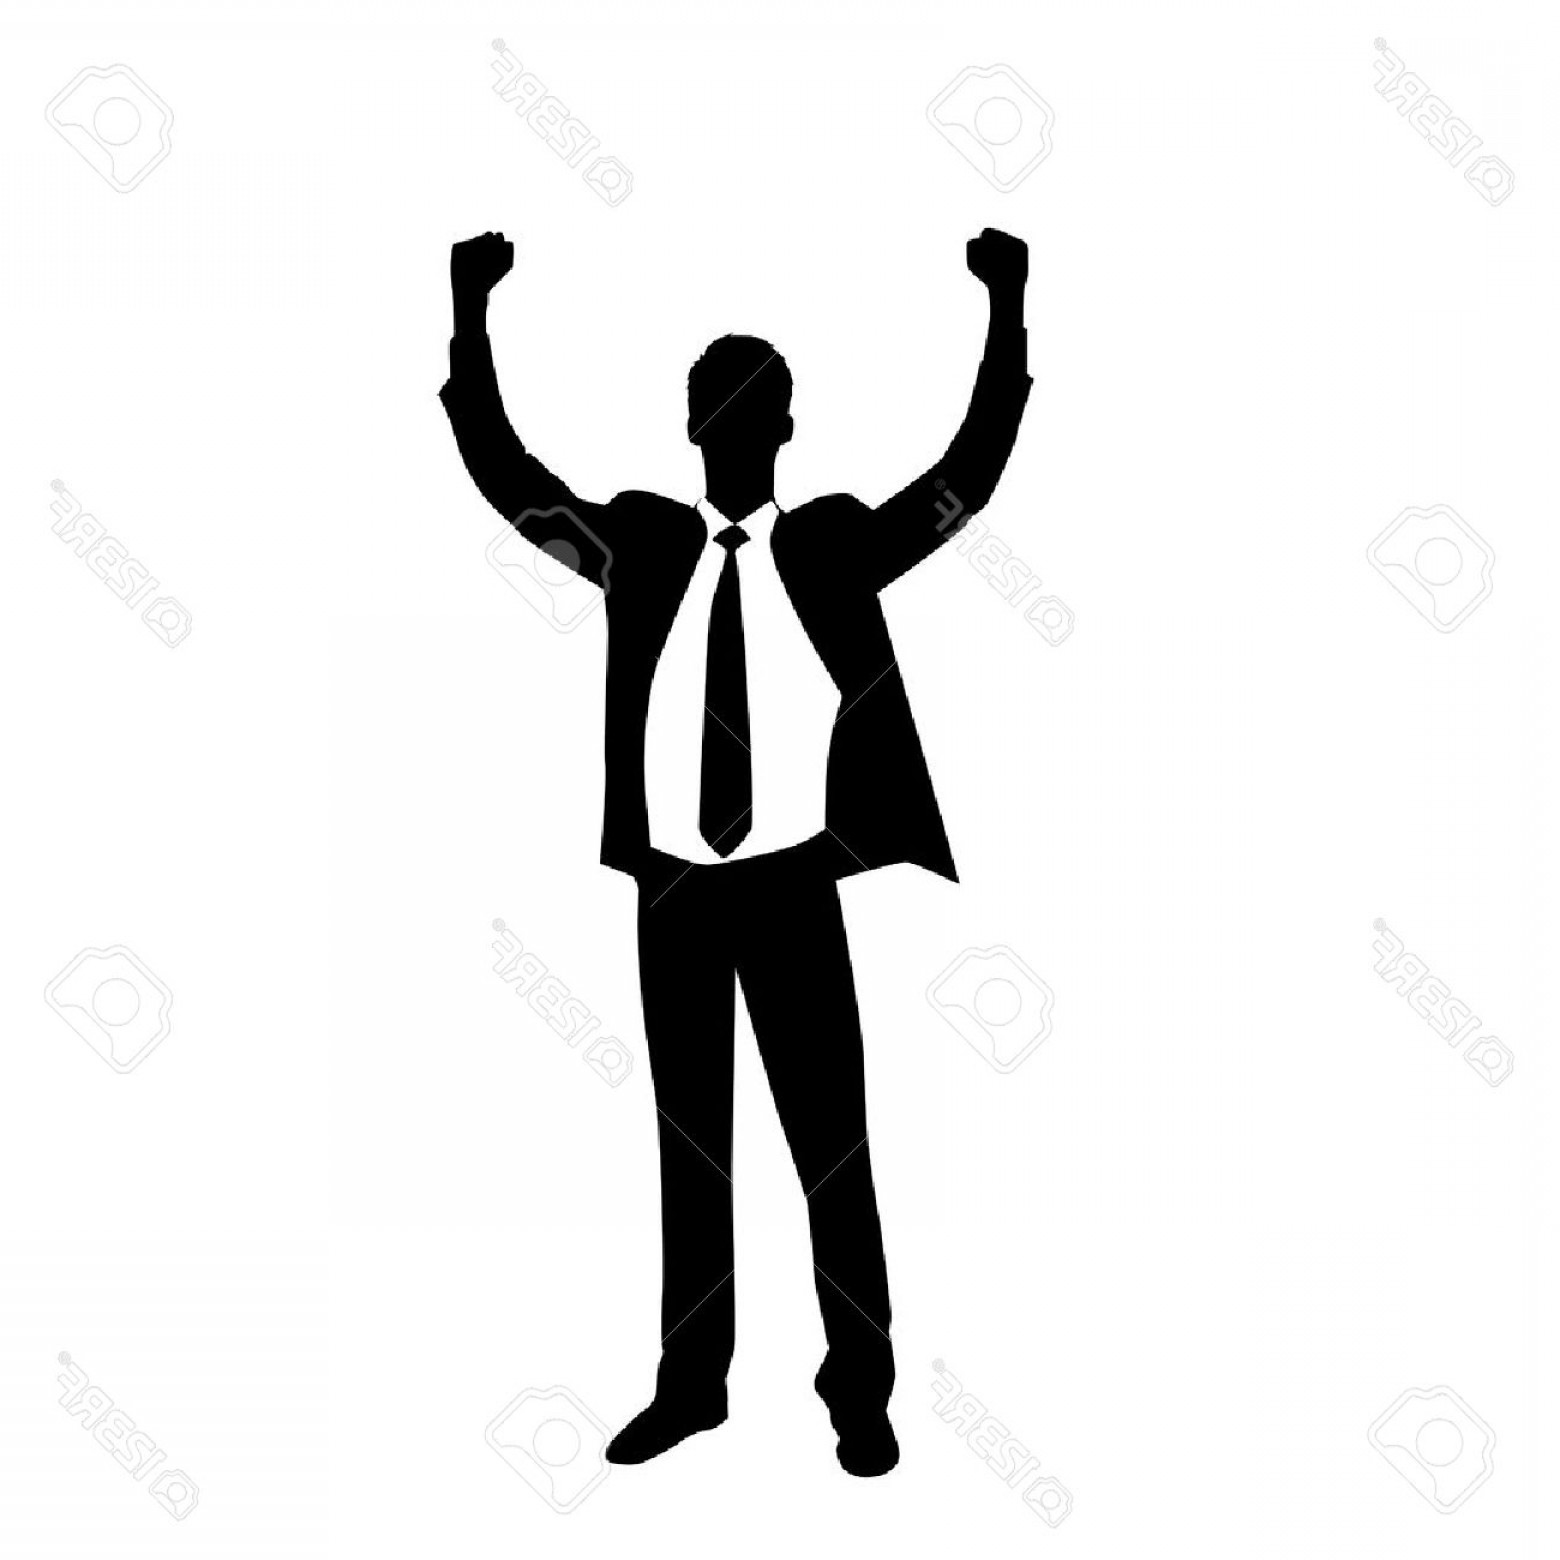 Holding Hands Up Silhouette Vector: Photostock Vector Business Man Silhouette Excited Hold Hands Up